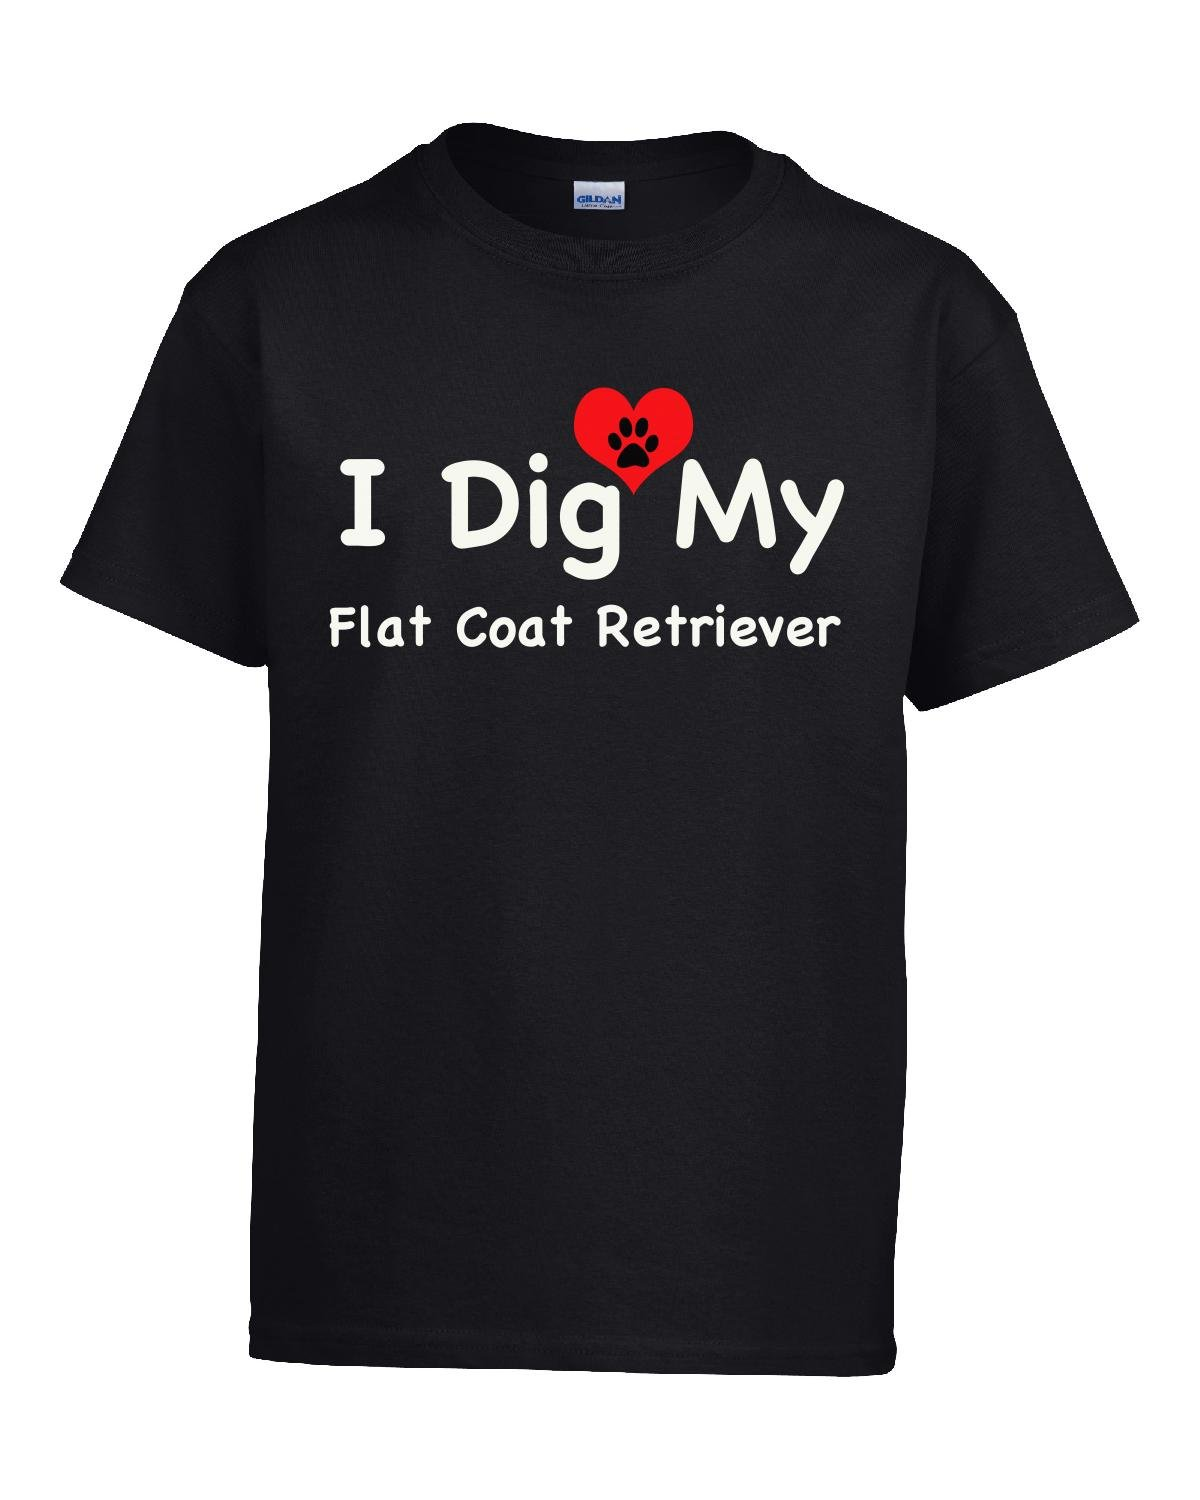 I Dig My Flat Coat Retriever - Girl Kids T-shirt Kids Xl Black